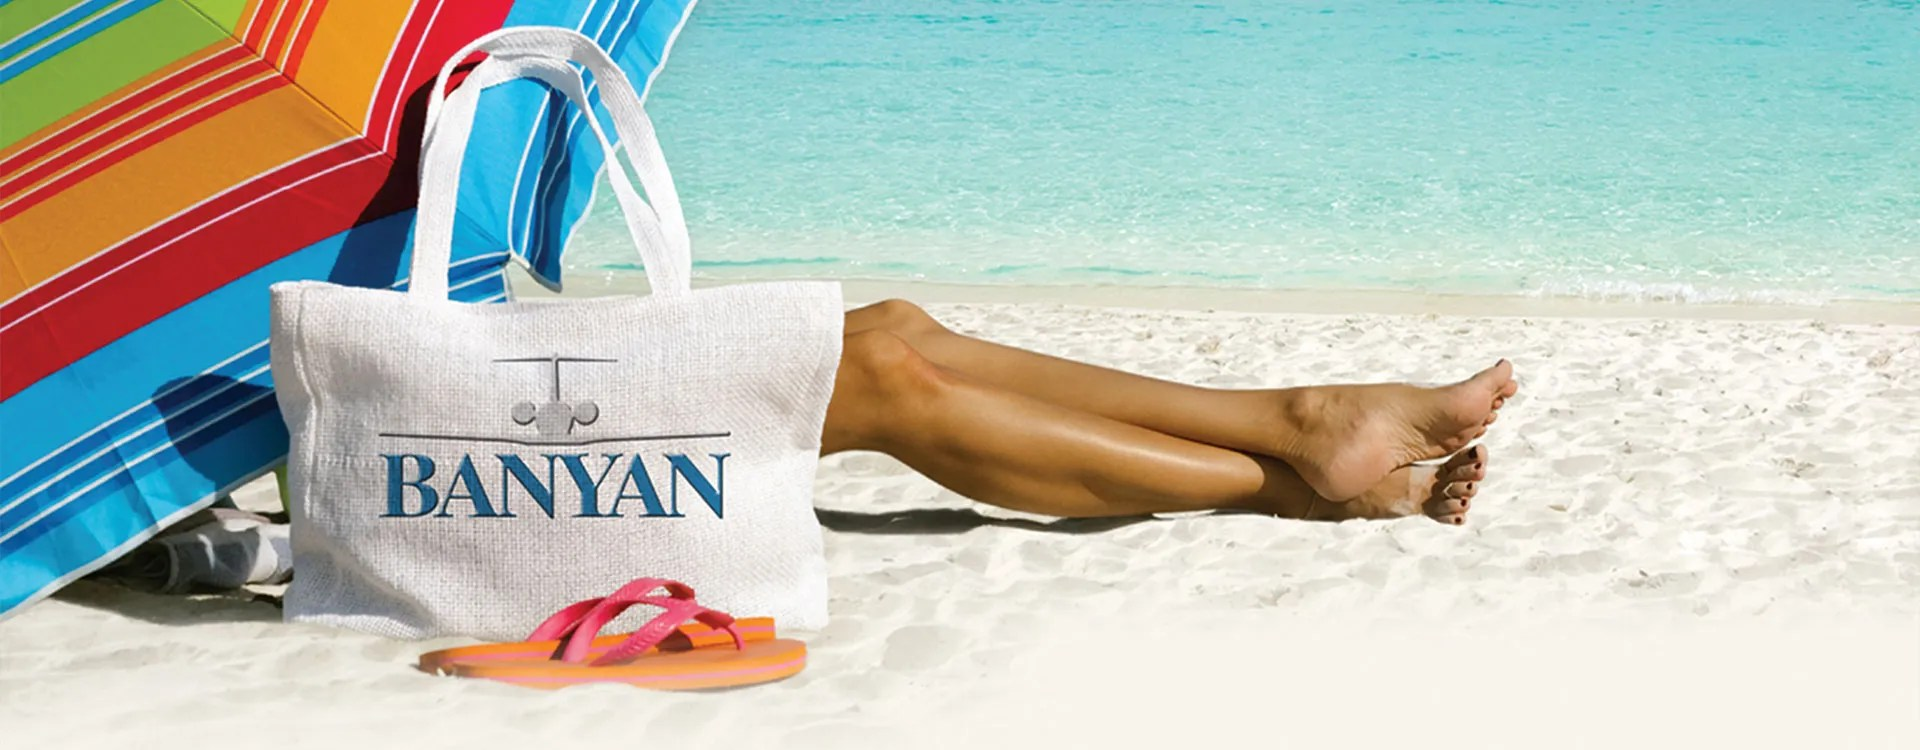 Banyan bag on bahamas beach